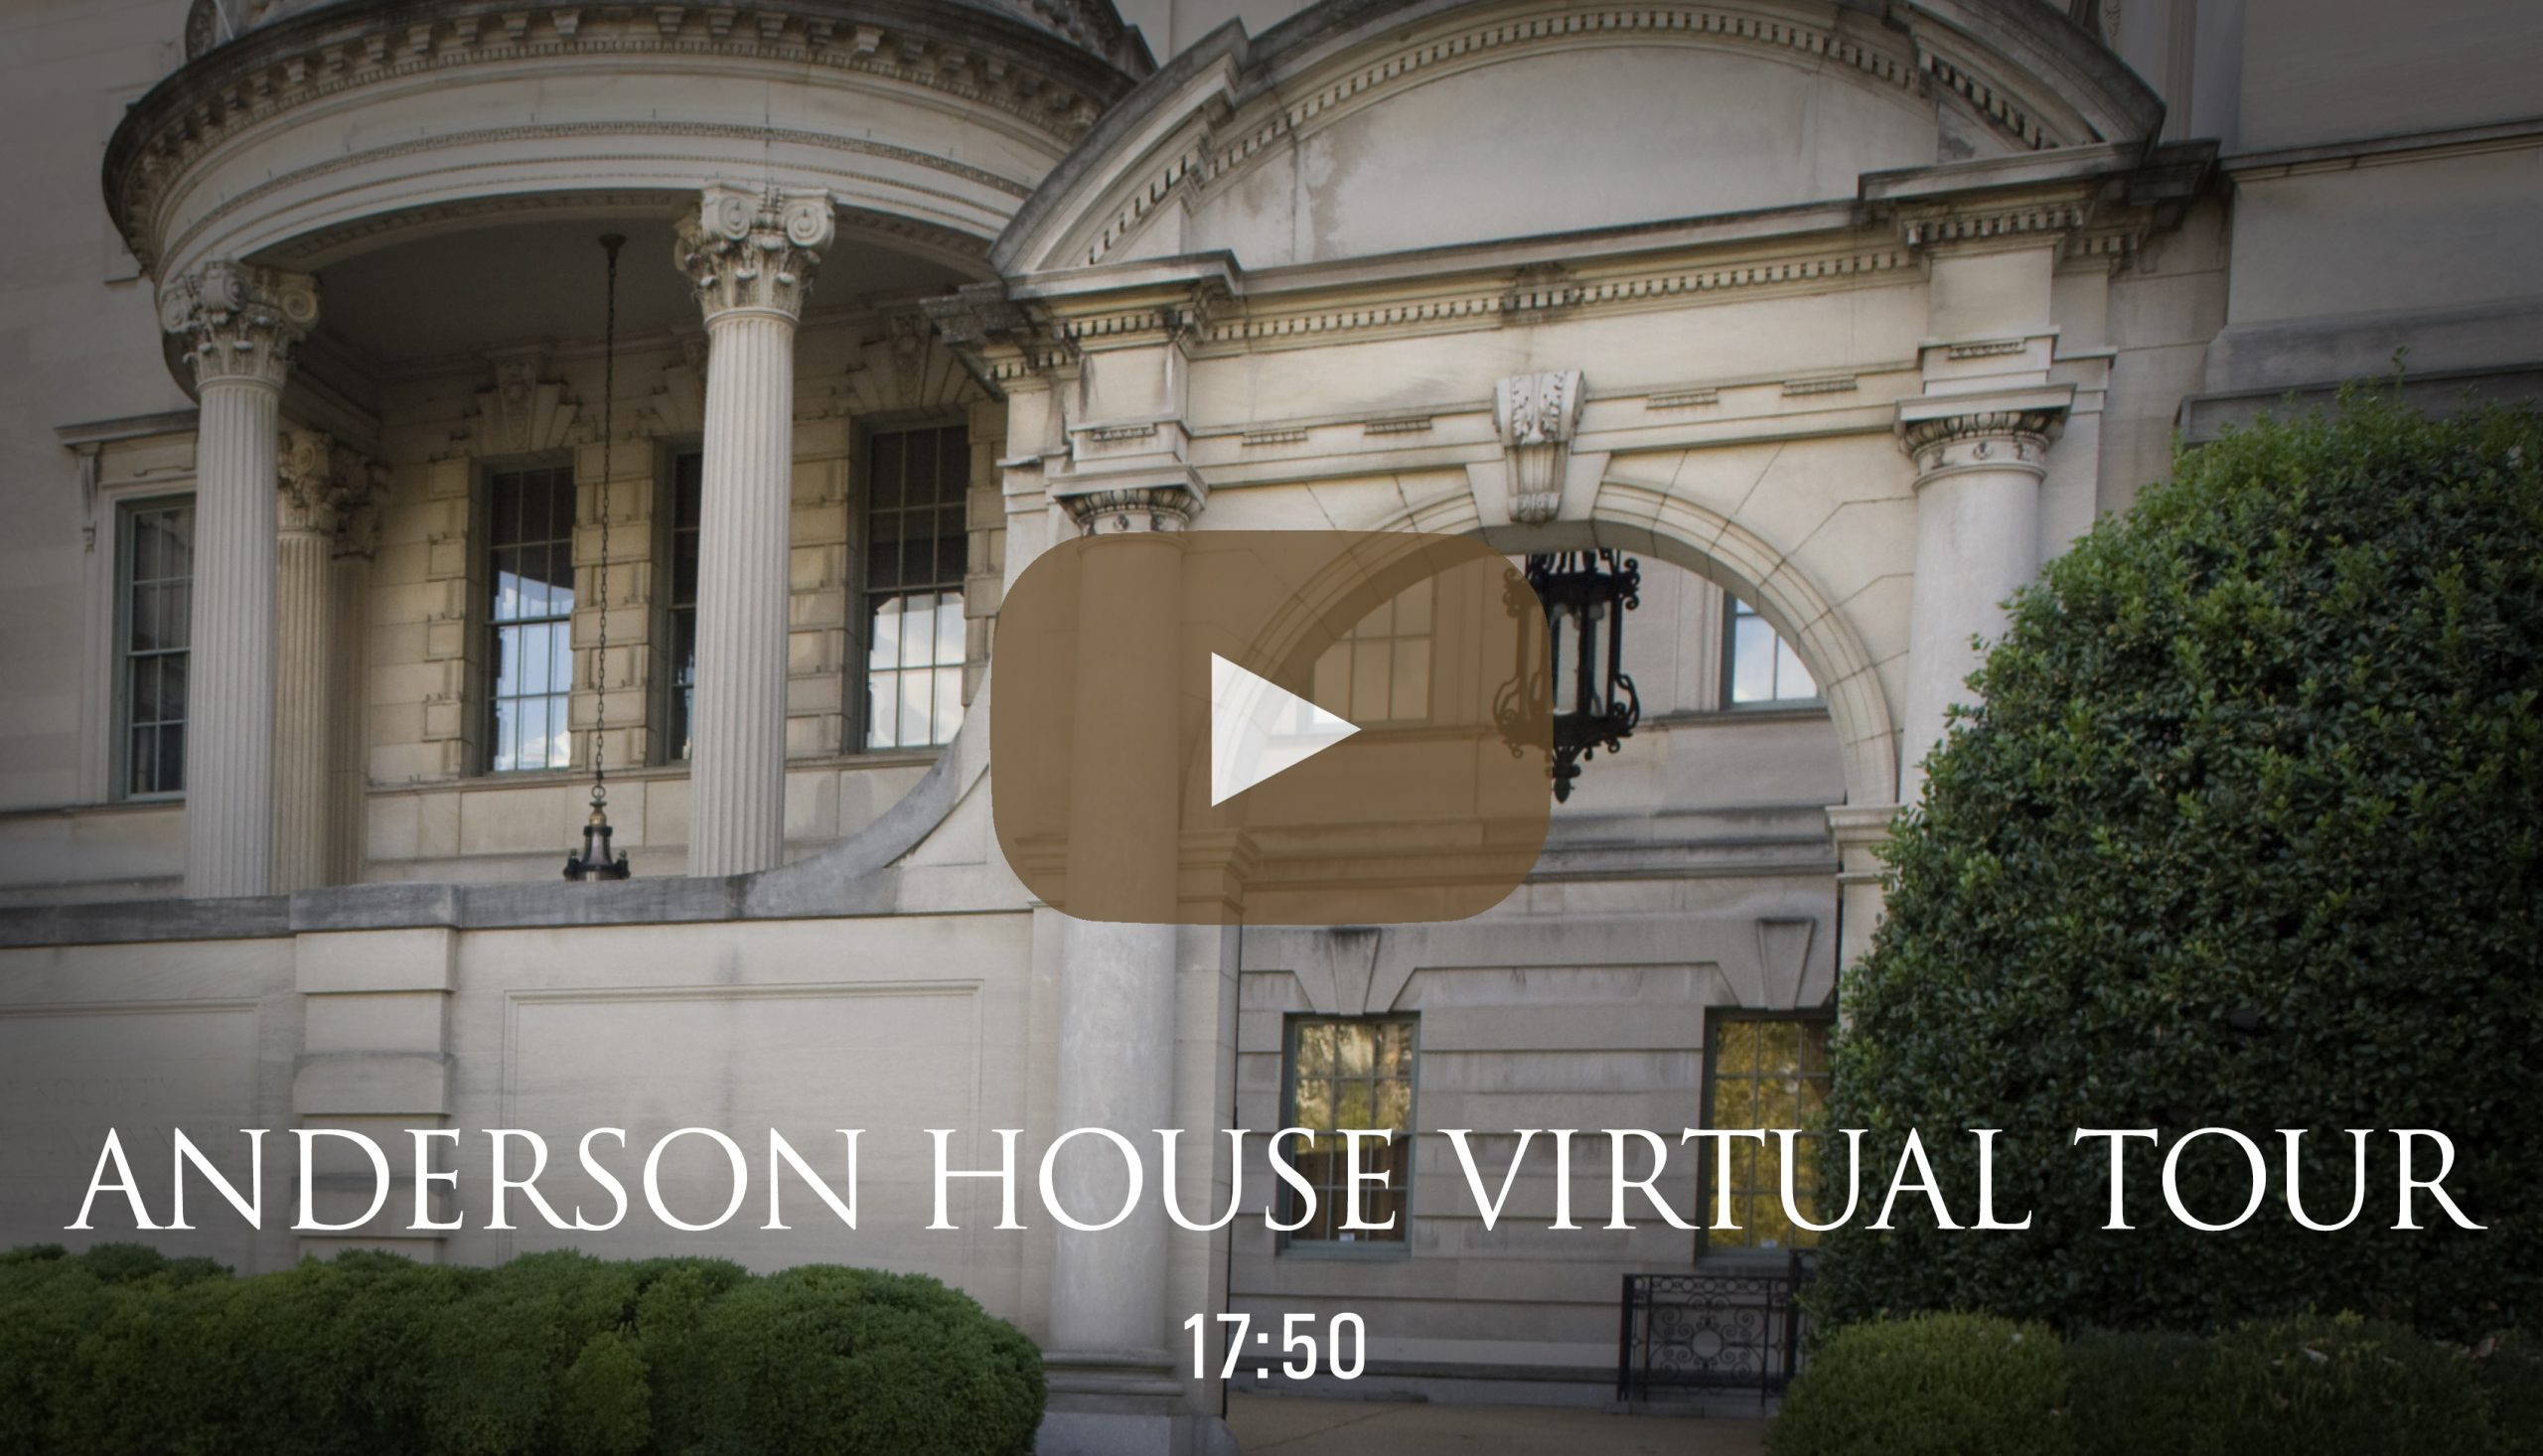 Watch a virtual tour video of Anderson House, headquarters of the American Revolution Institute of the Society of the Cincinnati.